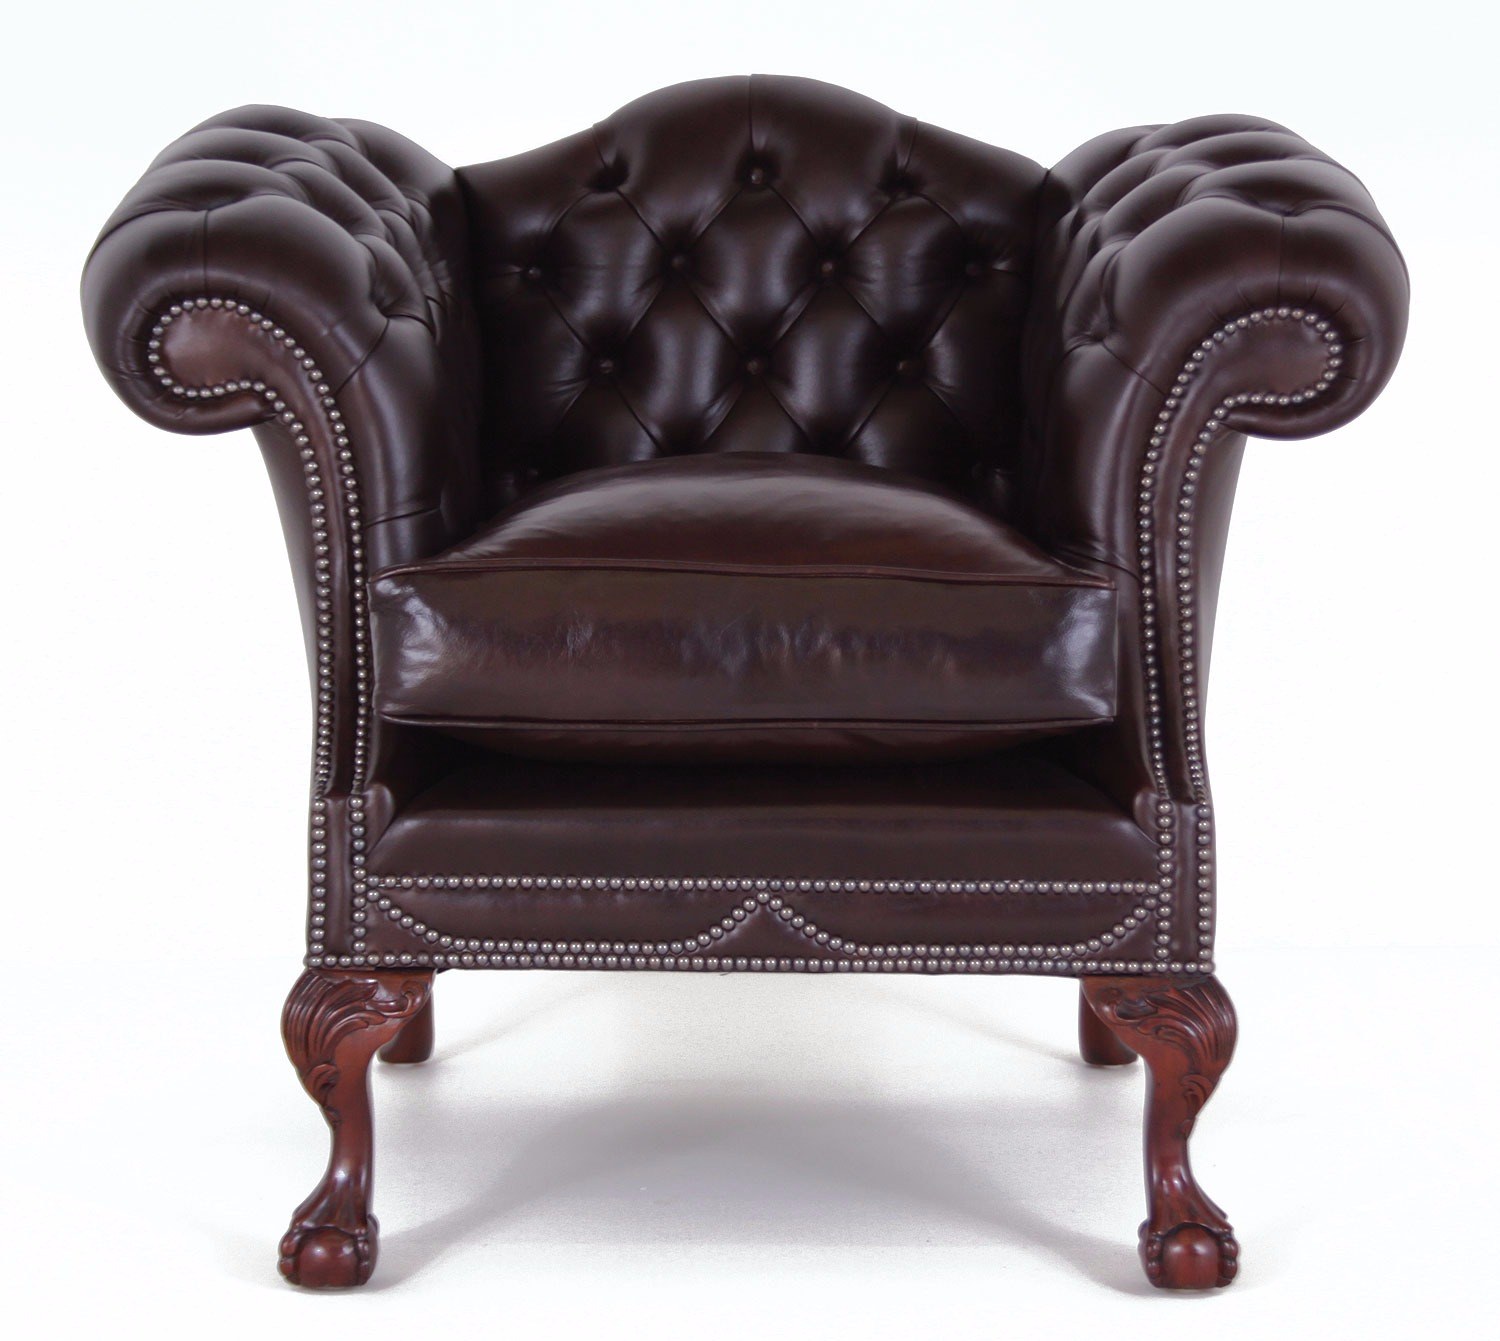 Chatsworth chair with cushion seat in Heritage chocolate leather